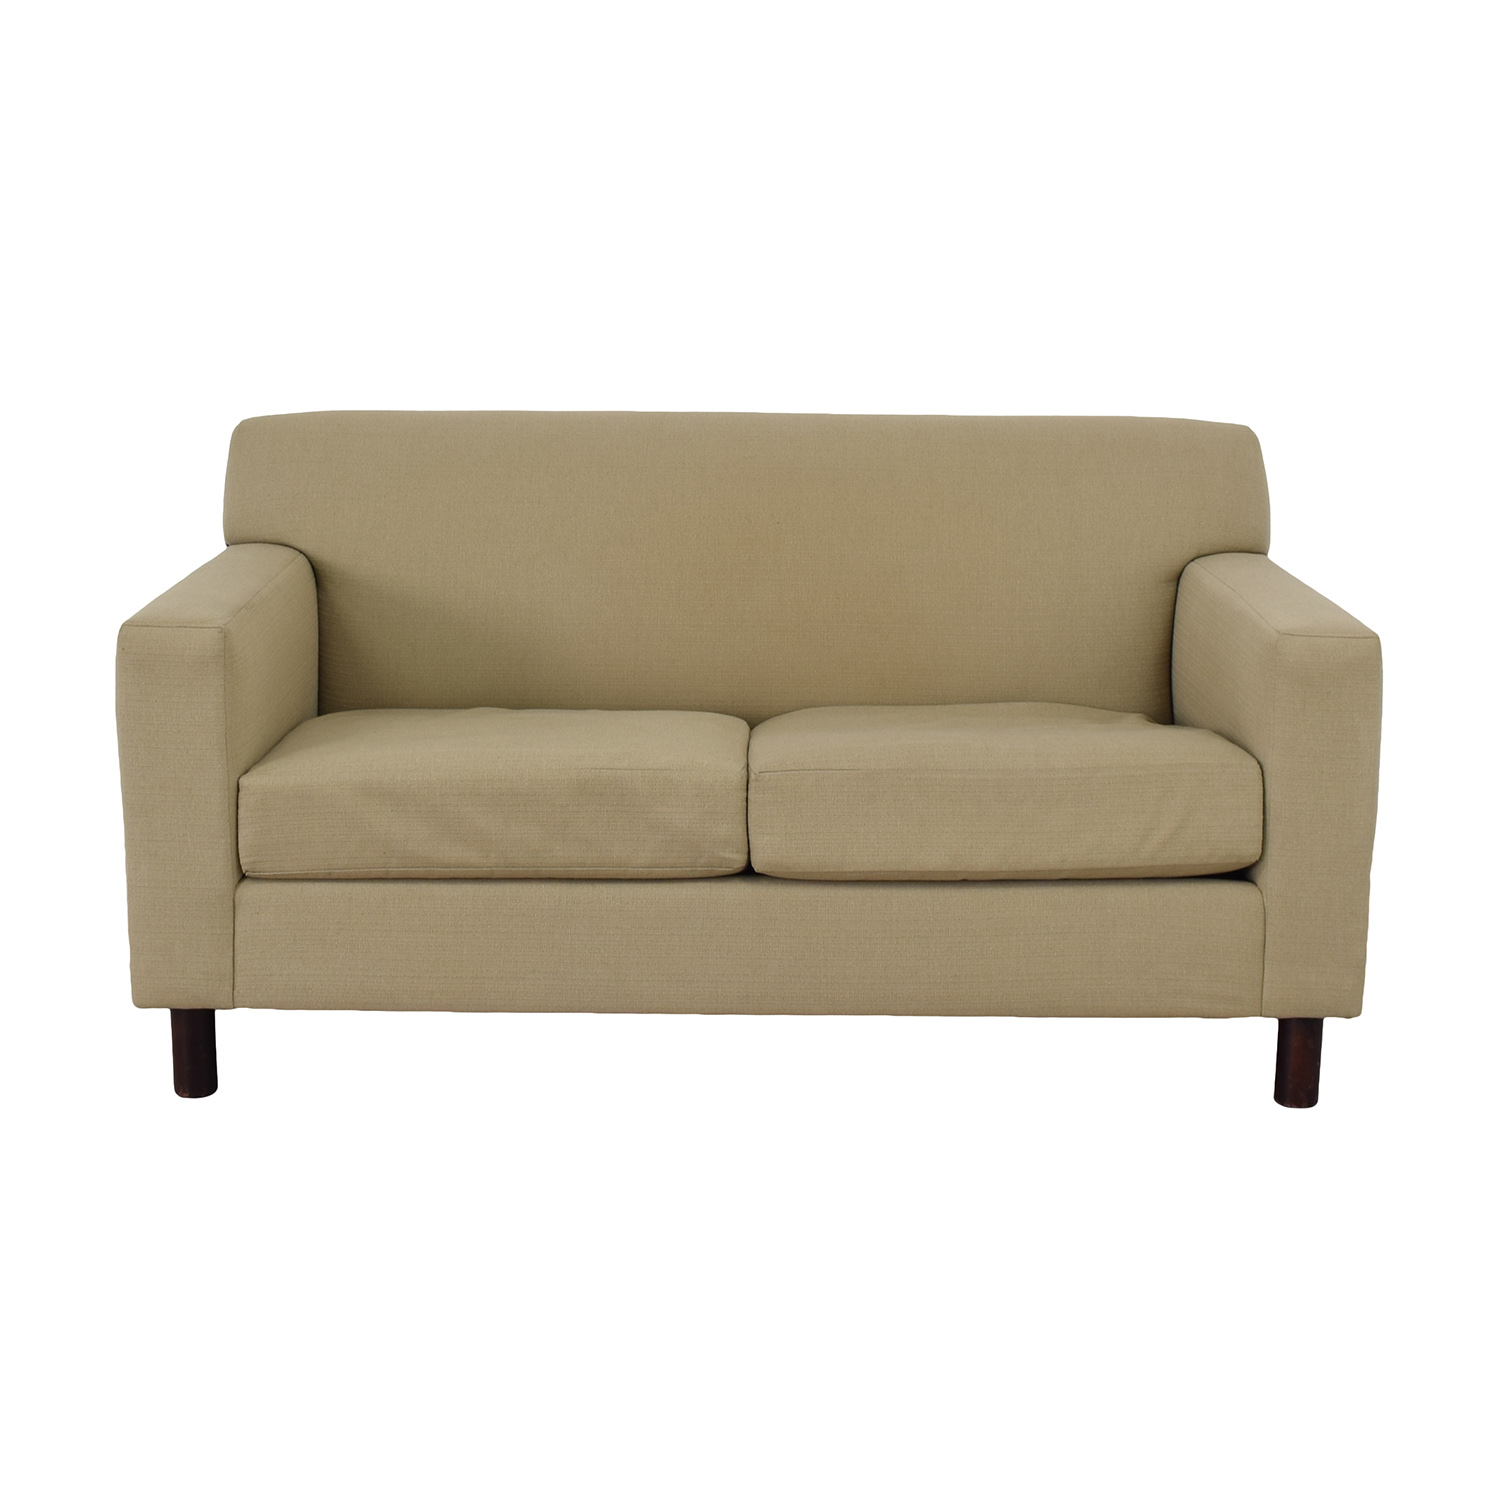 Room & Board Room & Board Beige Two-Cushion Loveseat coupon